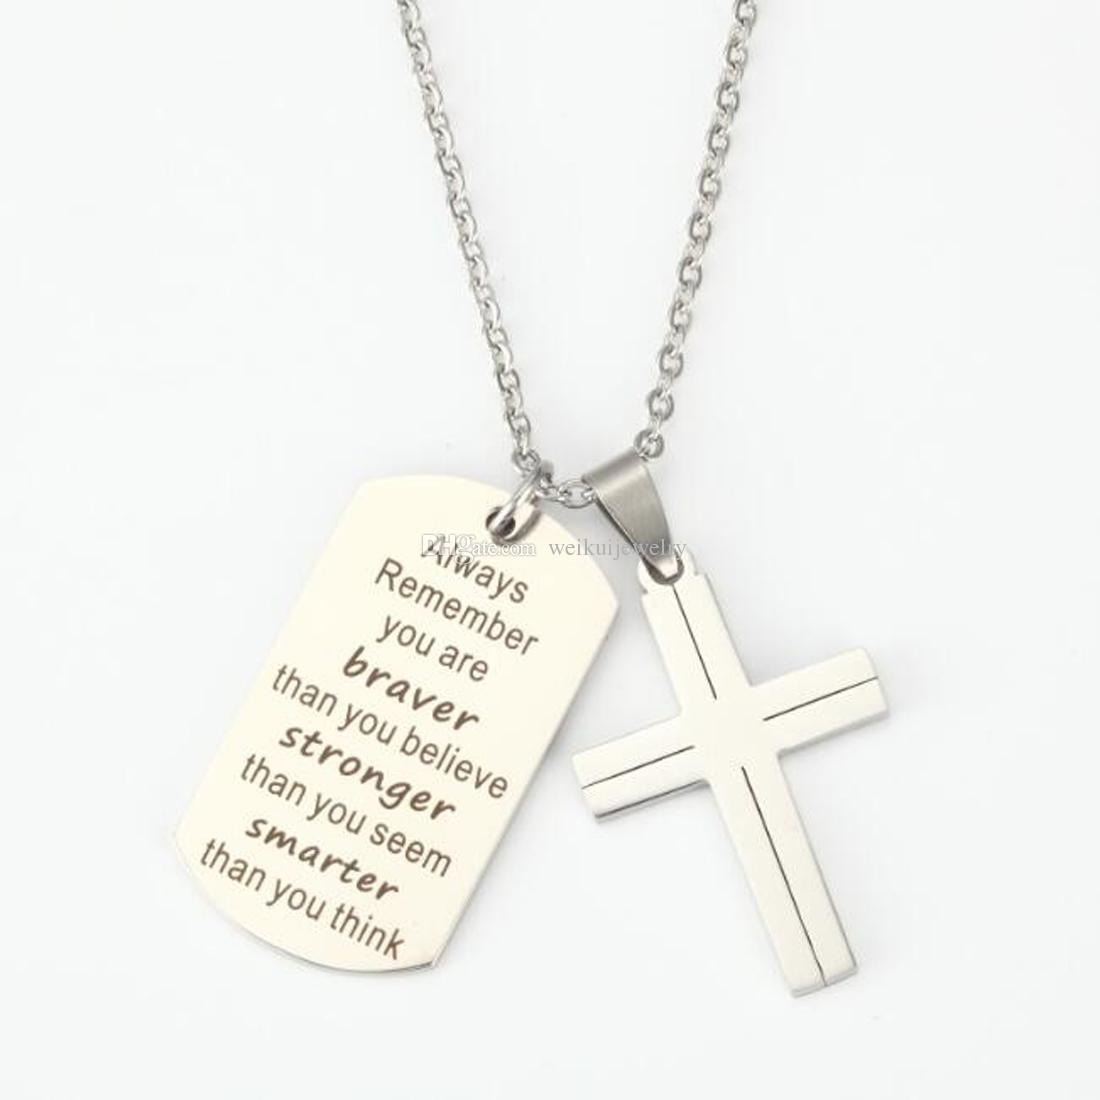 Square Pendant Personalized Necklace with Cross Necklaces Chain Gifts for Women Girl Boys Men Birthday Christmas Engraved